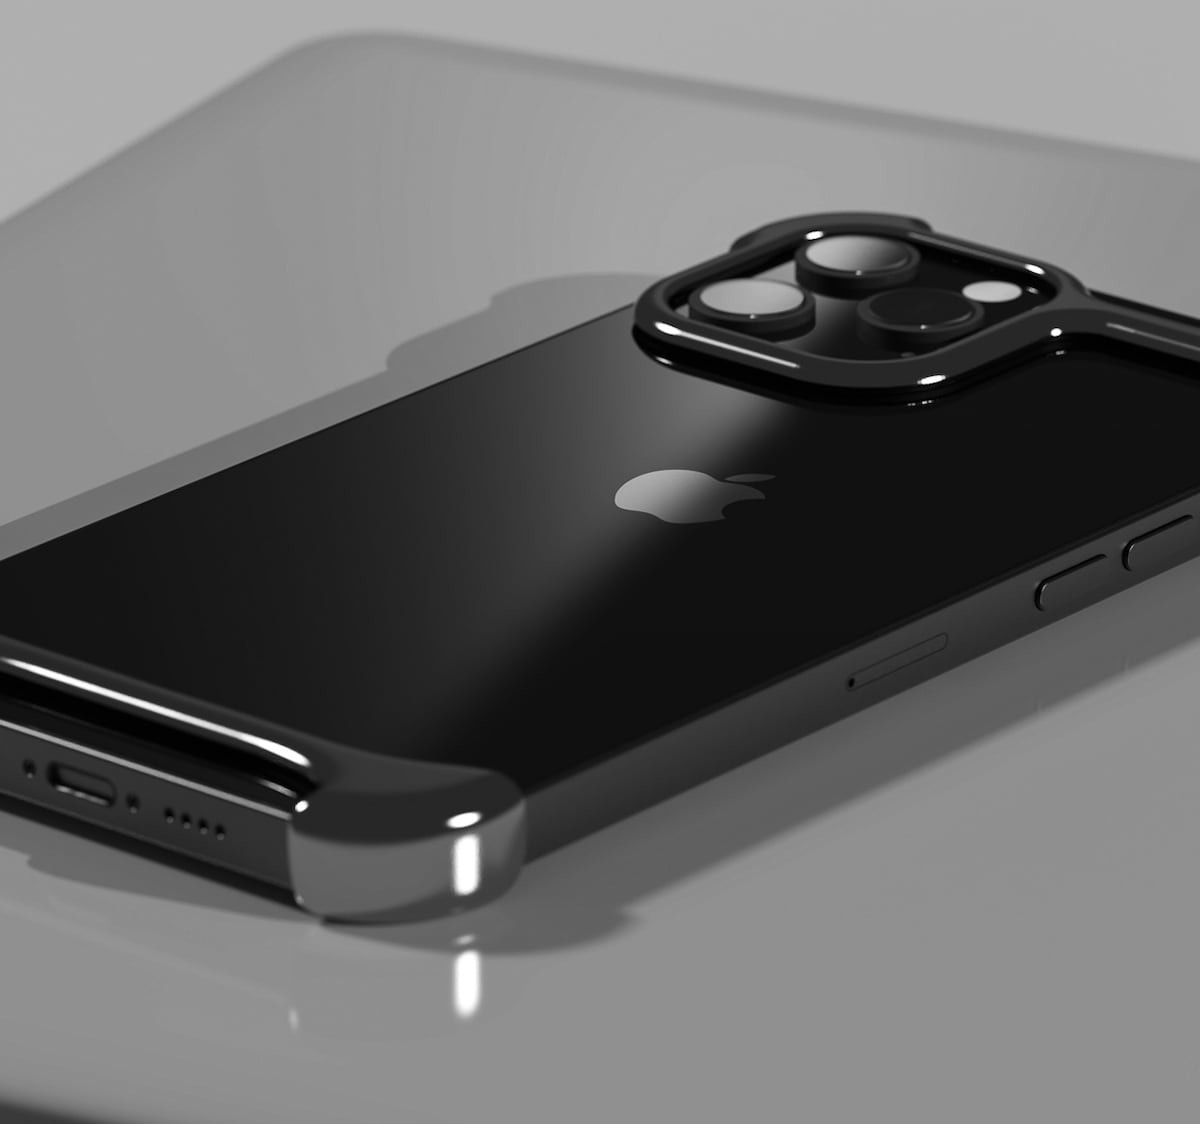 Arc Pulse reinvented iPhone 12 case blends with your phone's simple, elegant design